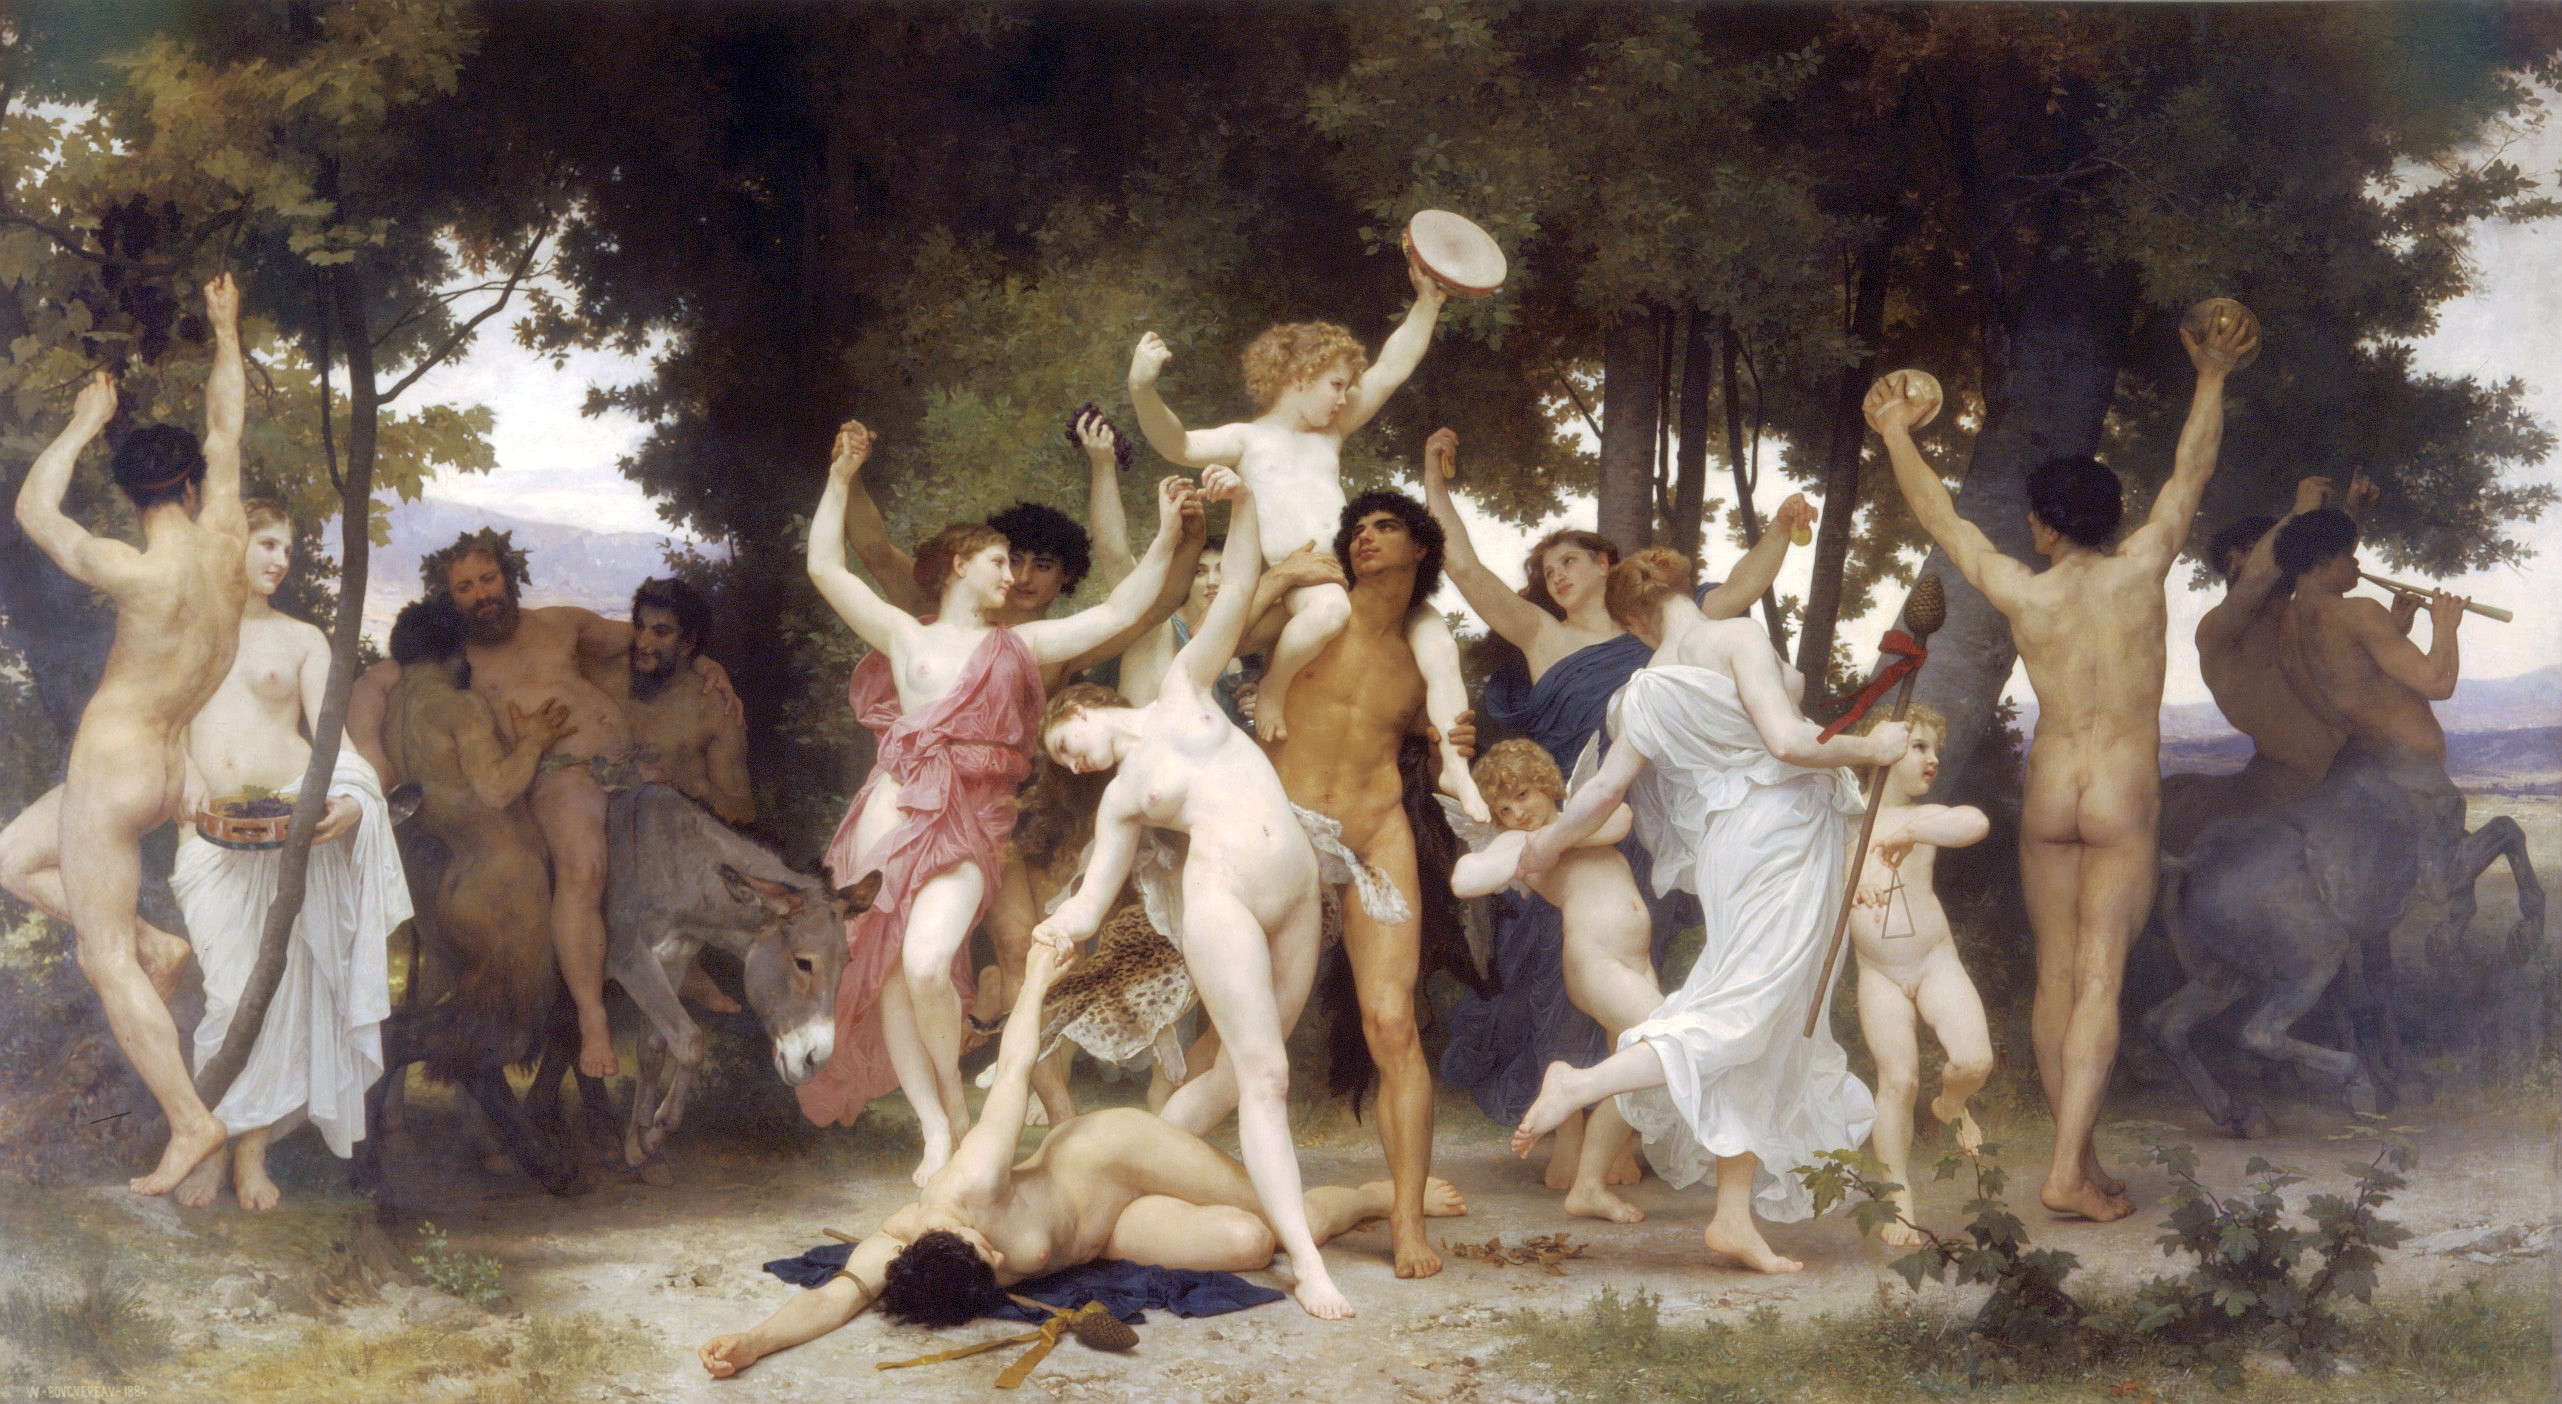 Cults of bacchus dionysus orgies picture